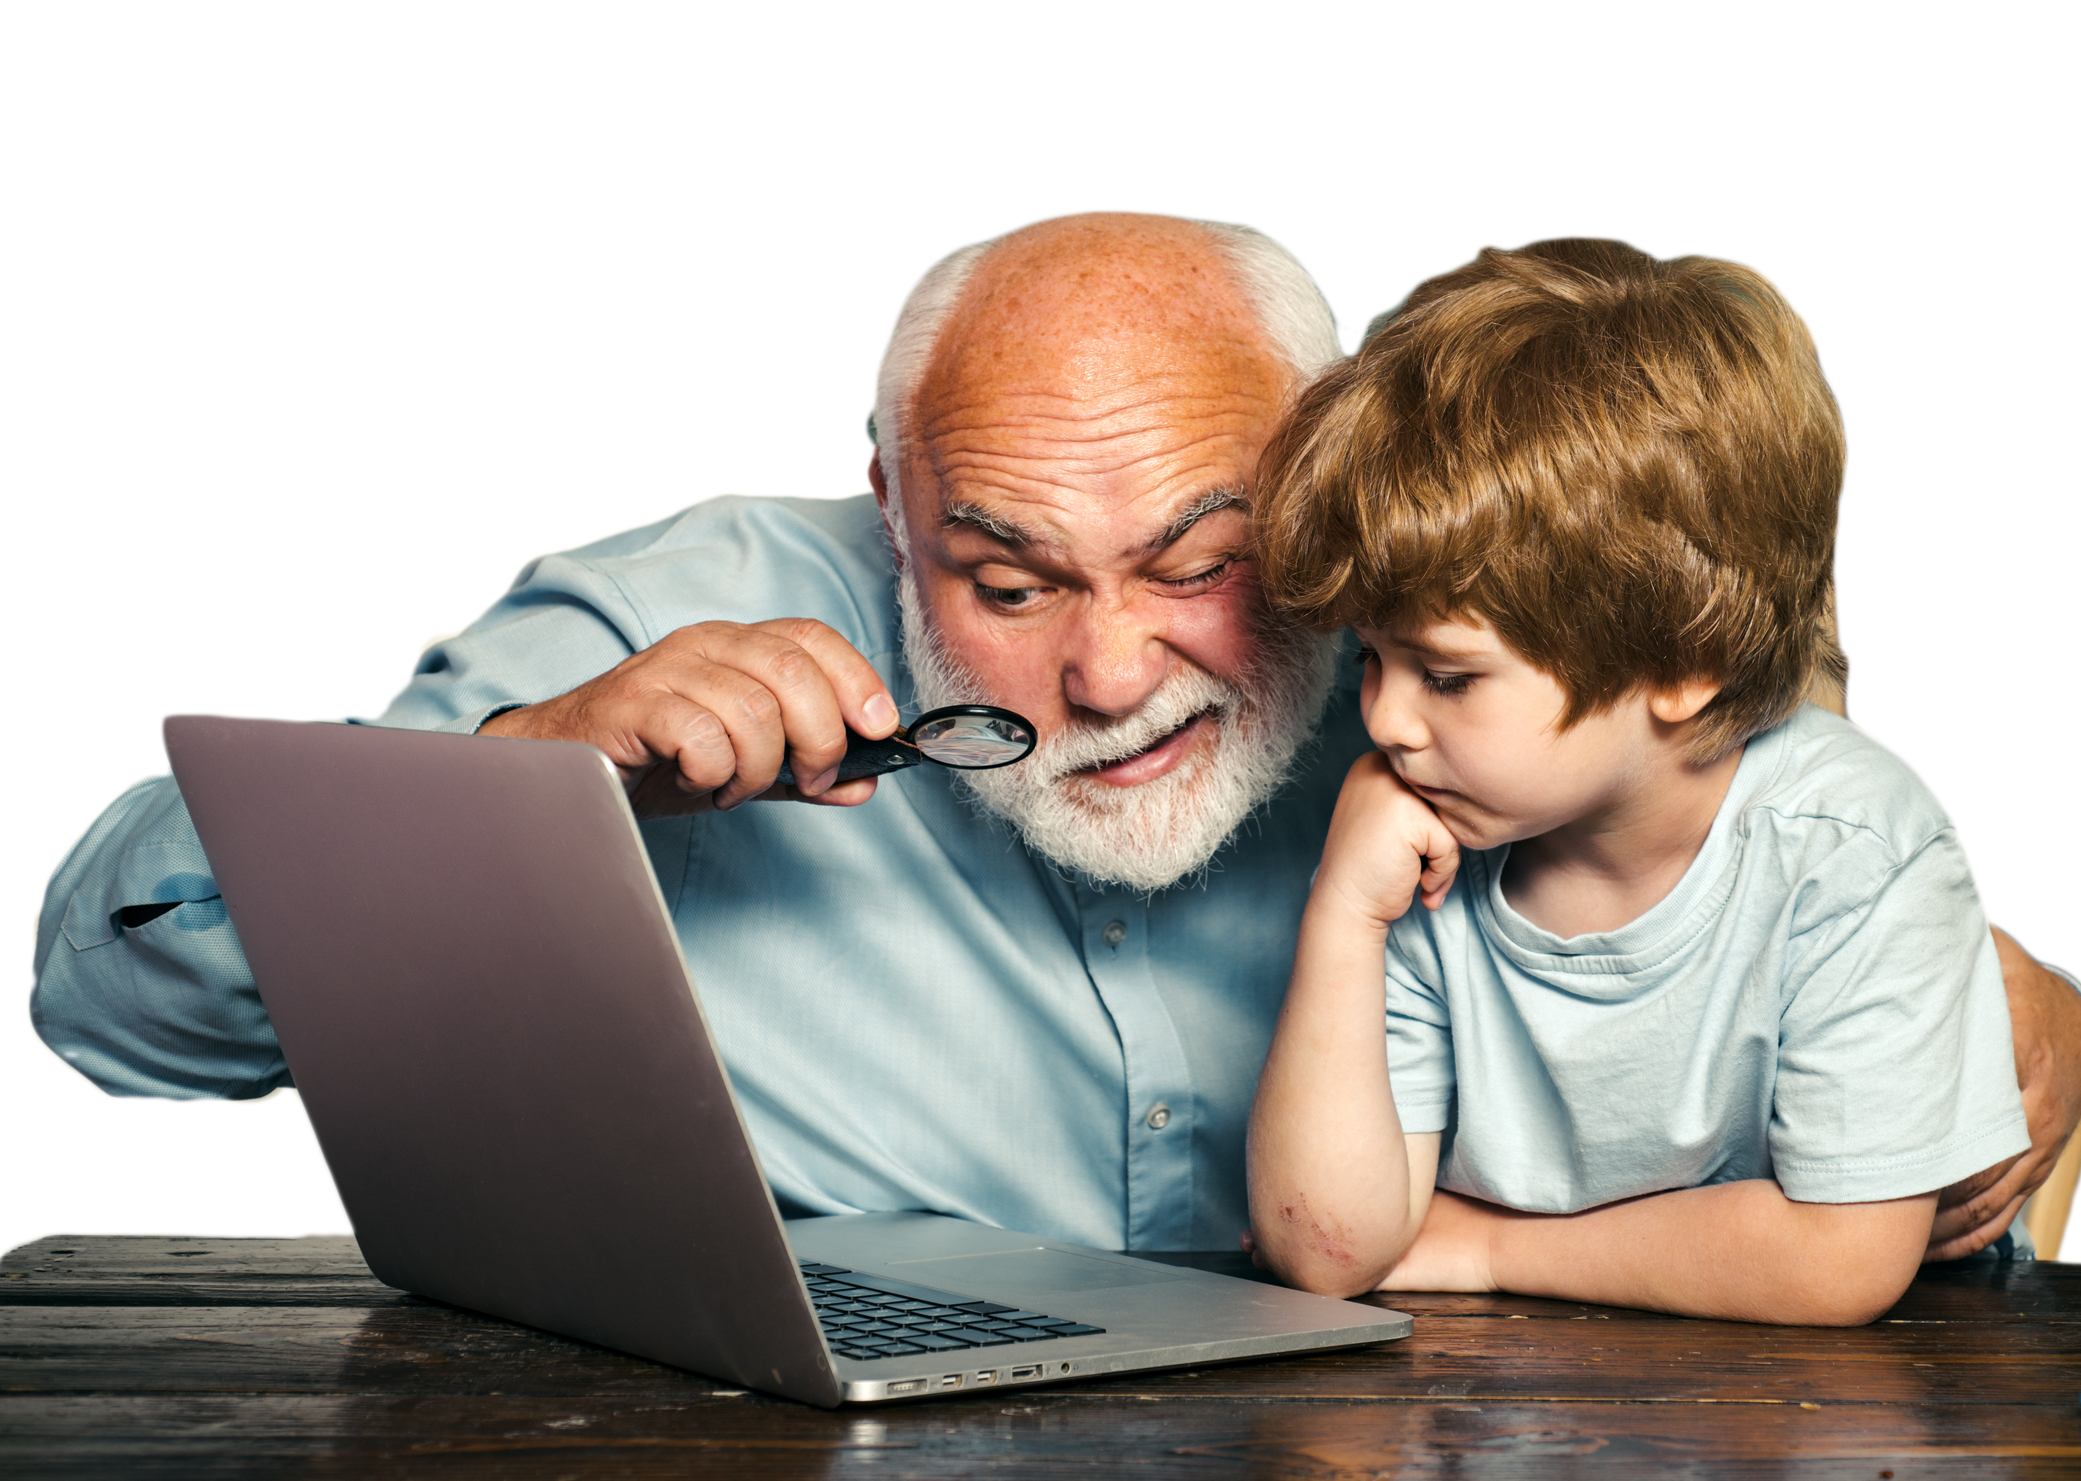 Parent helping a child learn remotely on a laptop